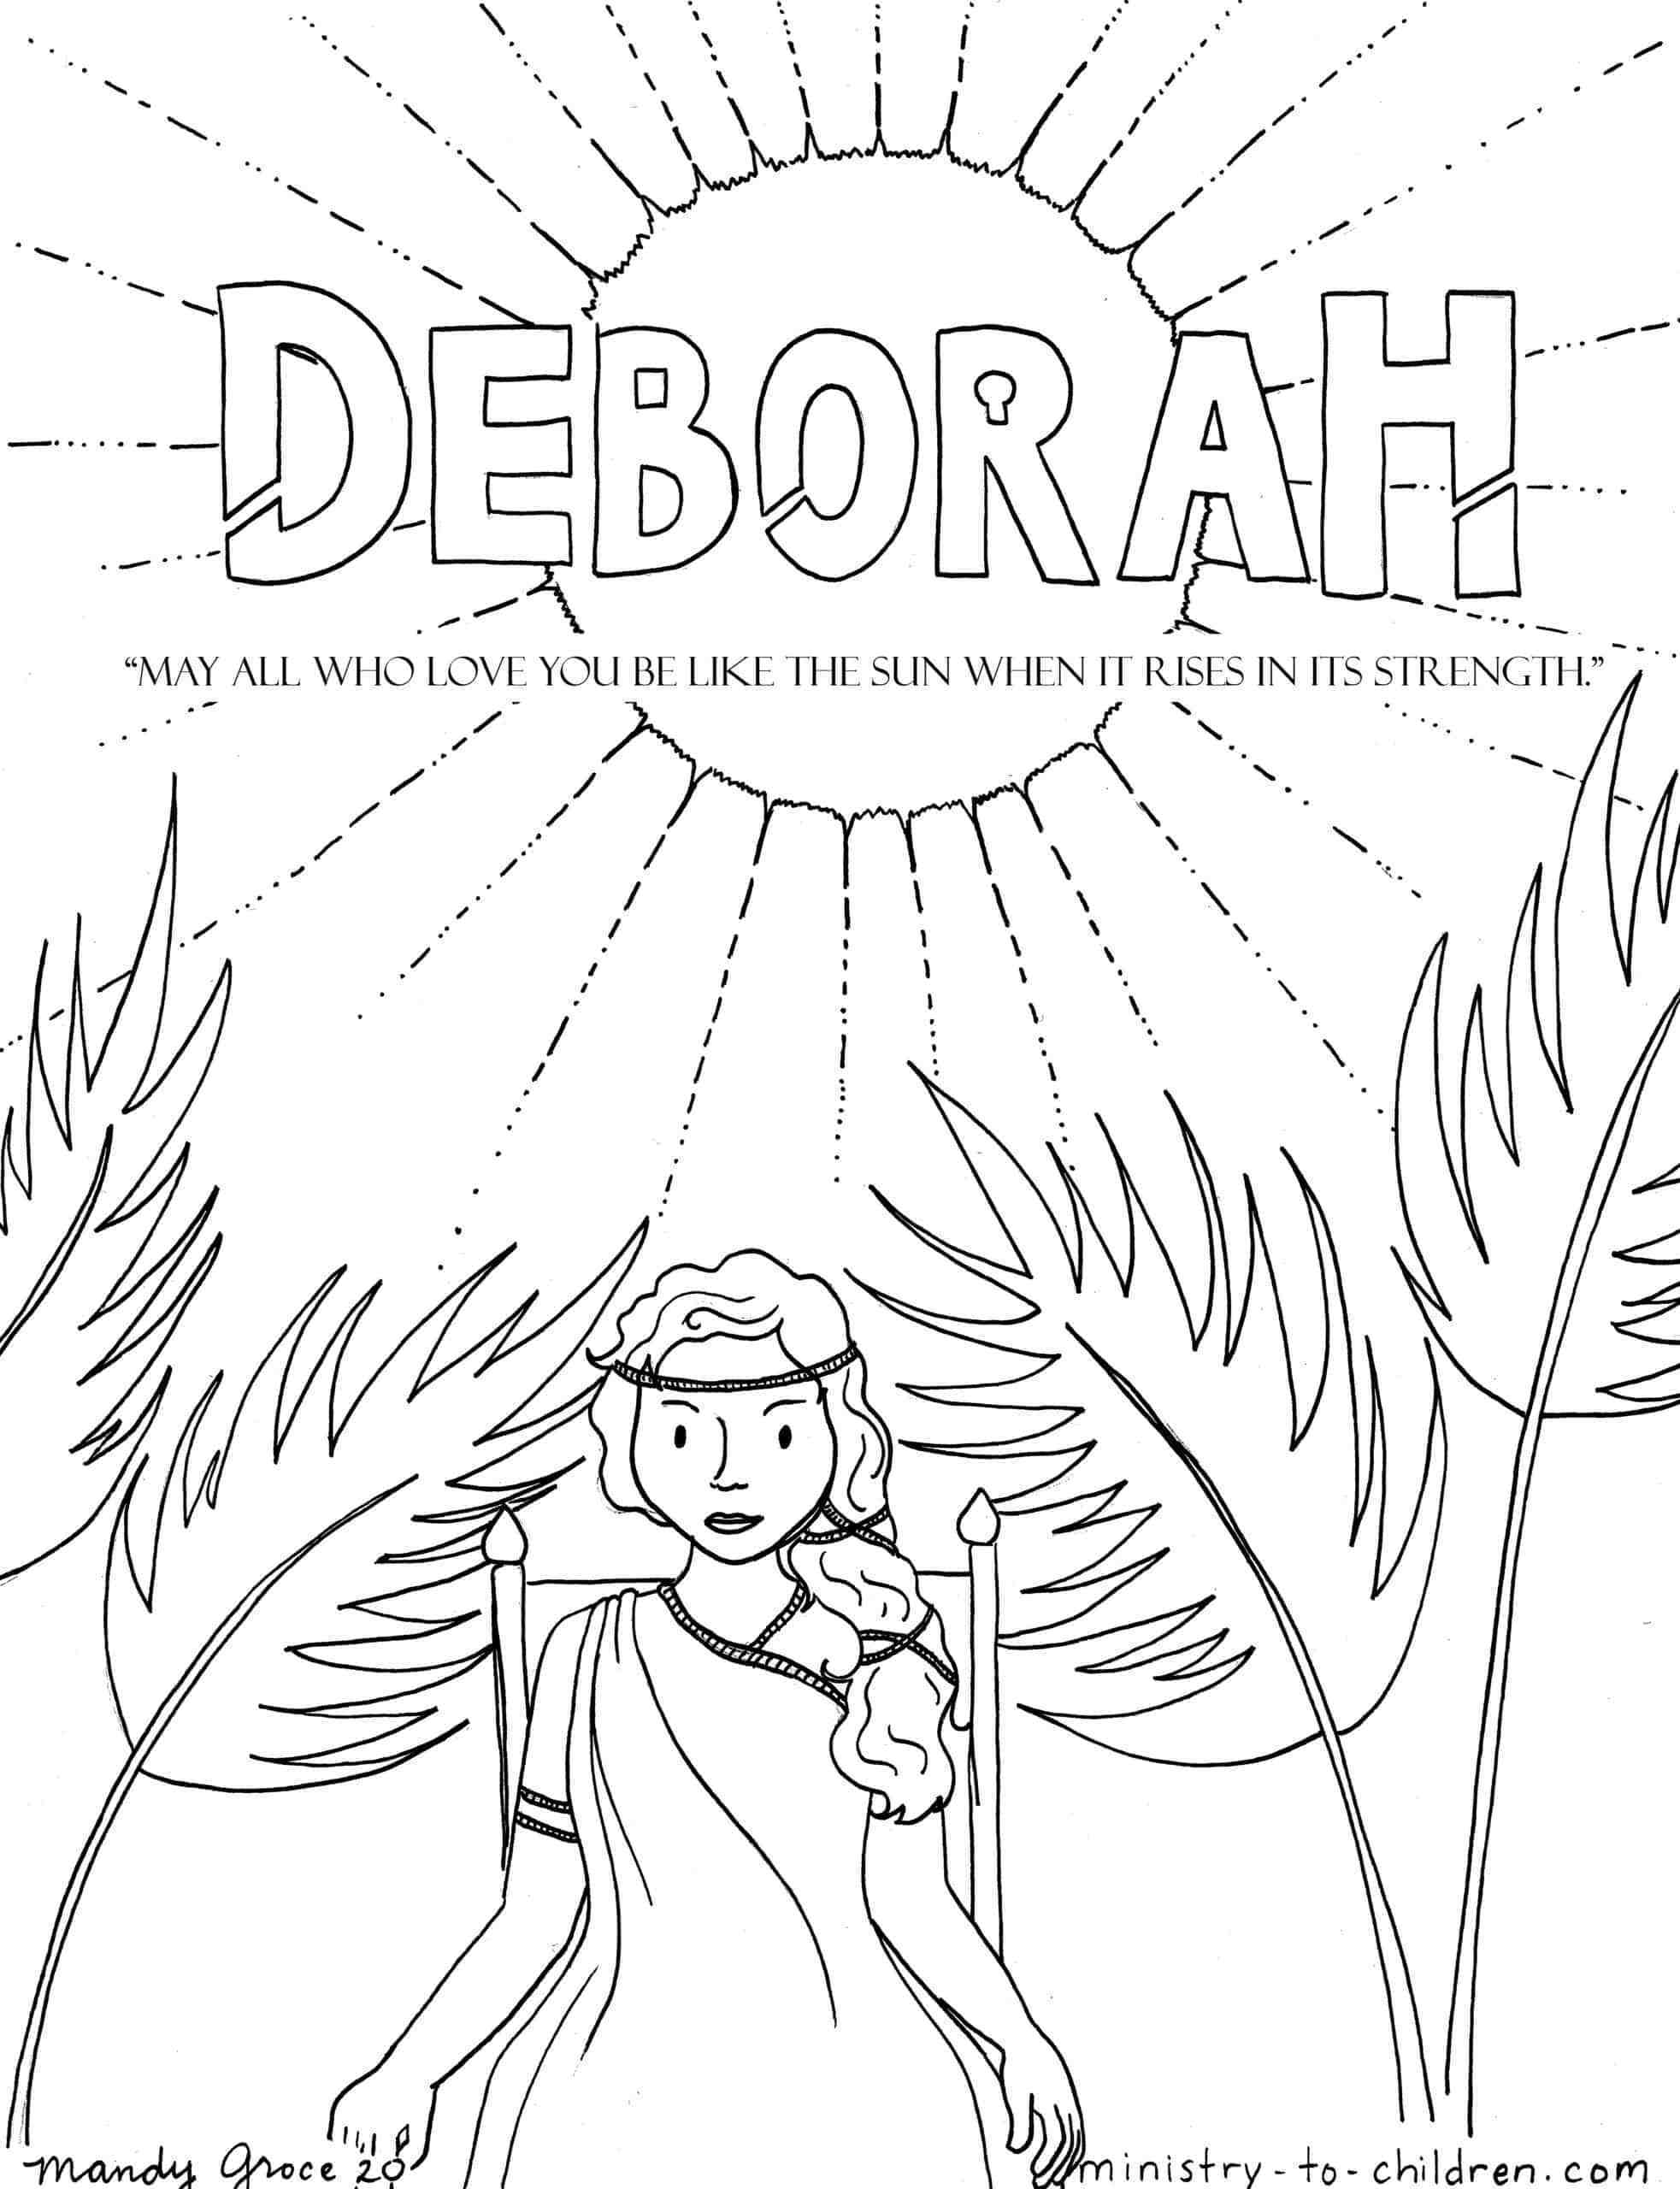 Deborah Coloring Page | Ministry-To-Children